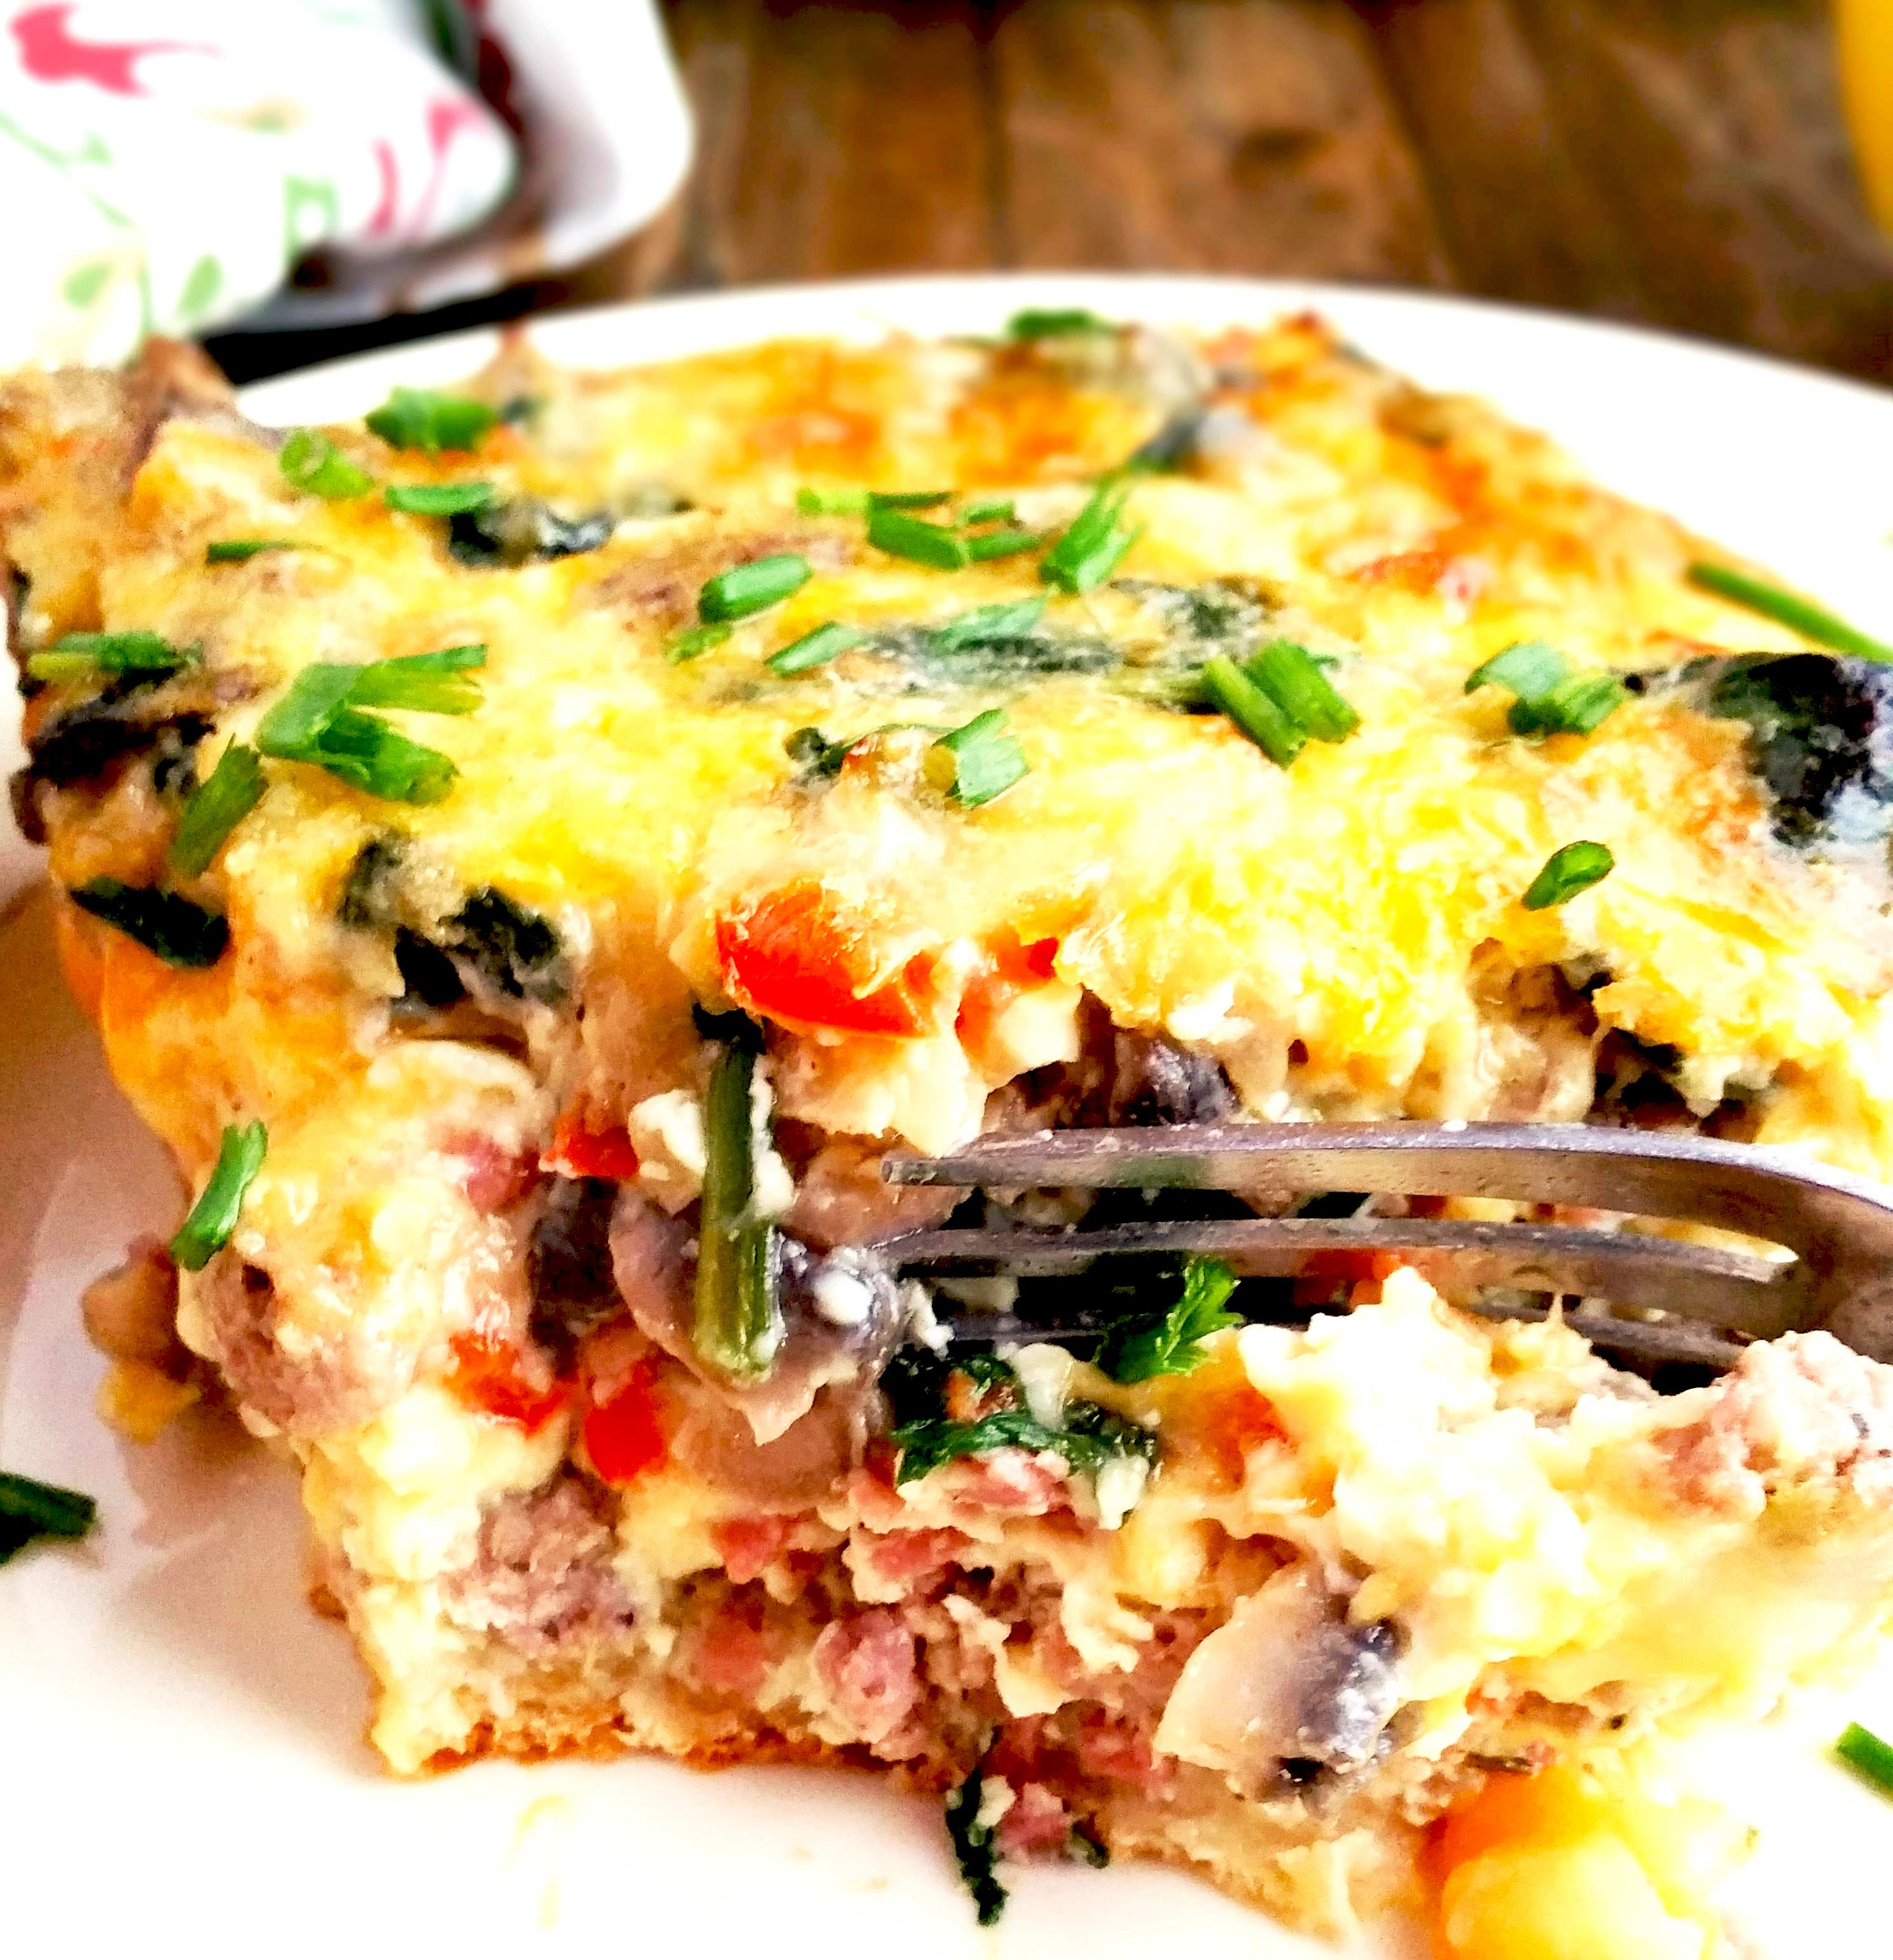 Breakfast Cassorle: Best Breakfast Egg Casserole